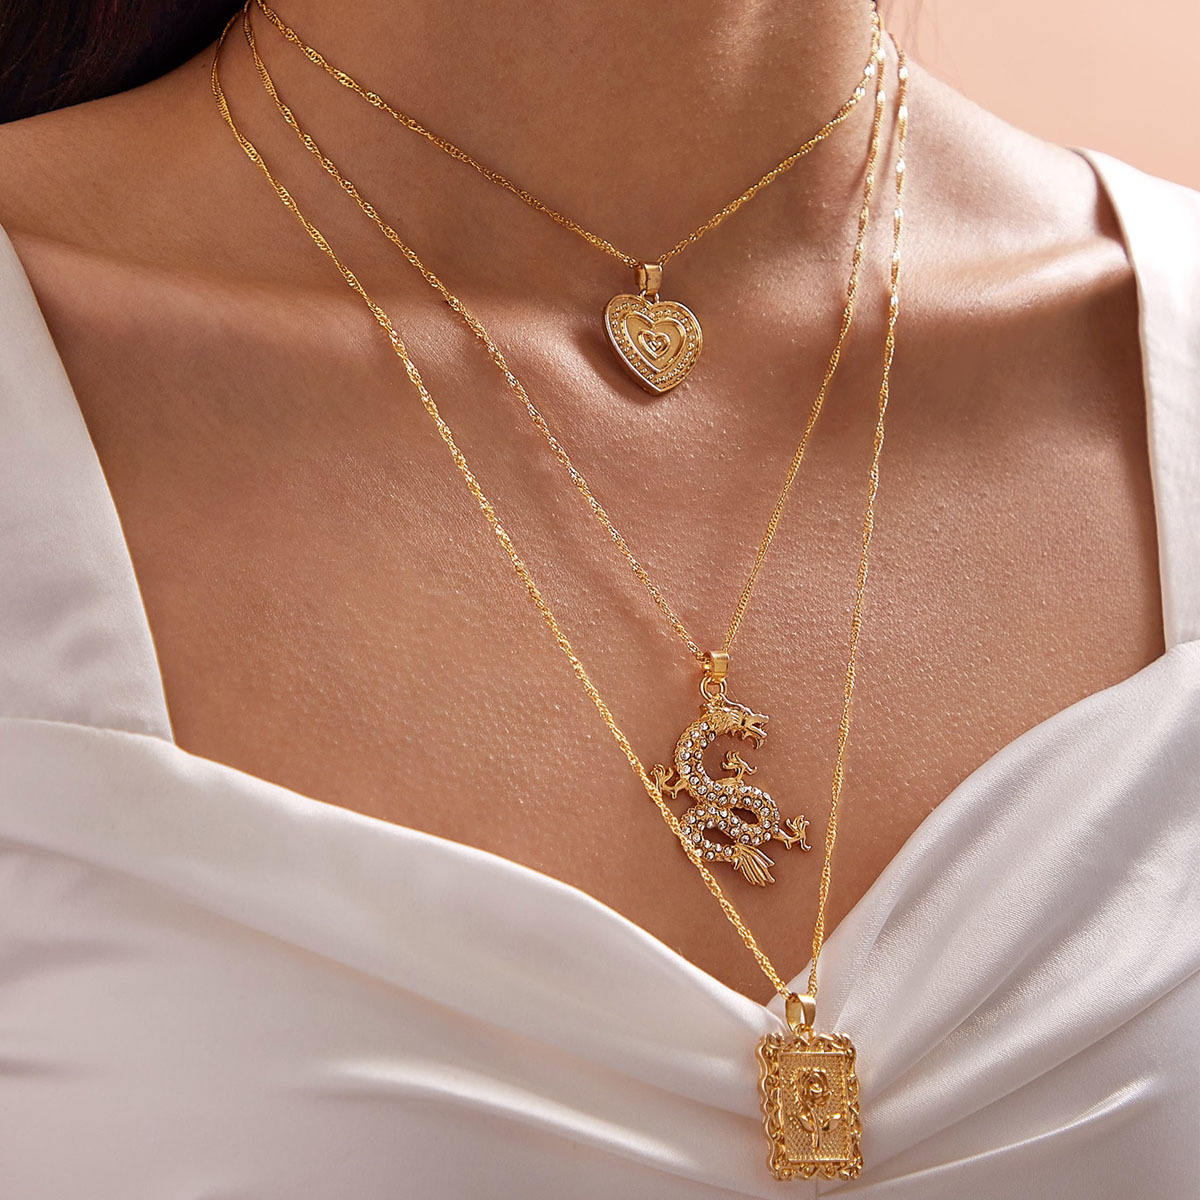 Multiple styles neck lace gold sliver color fashion accessories for girl women spring